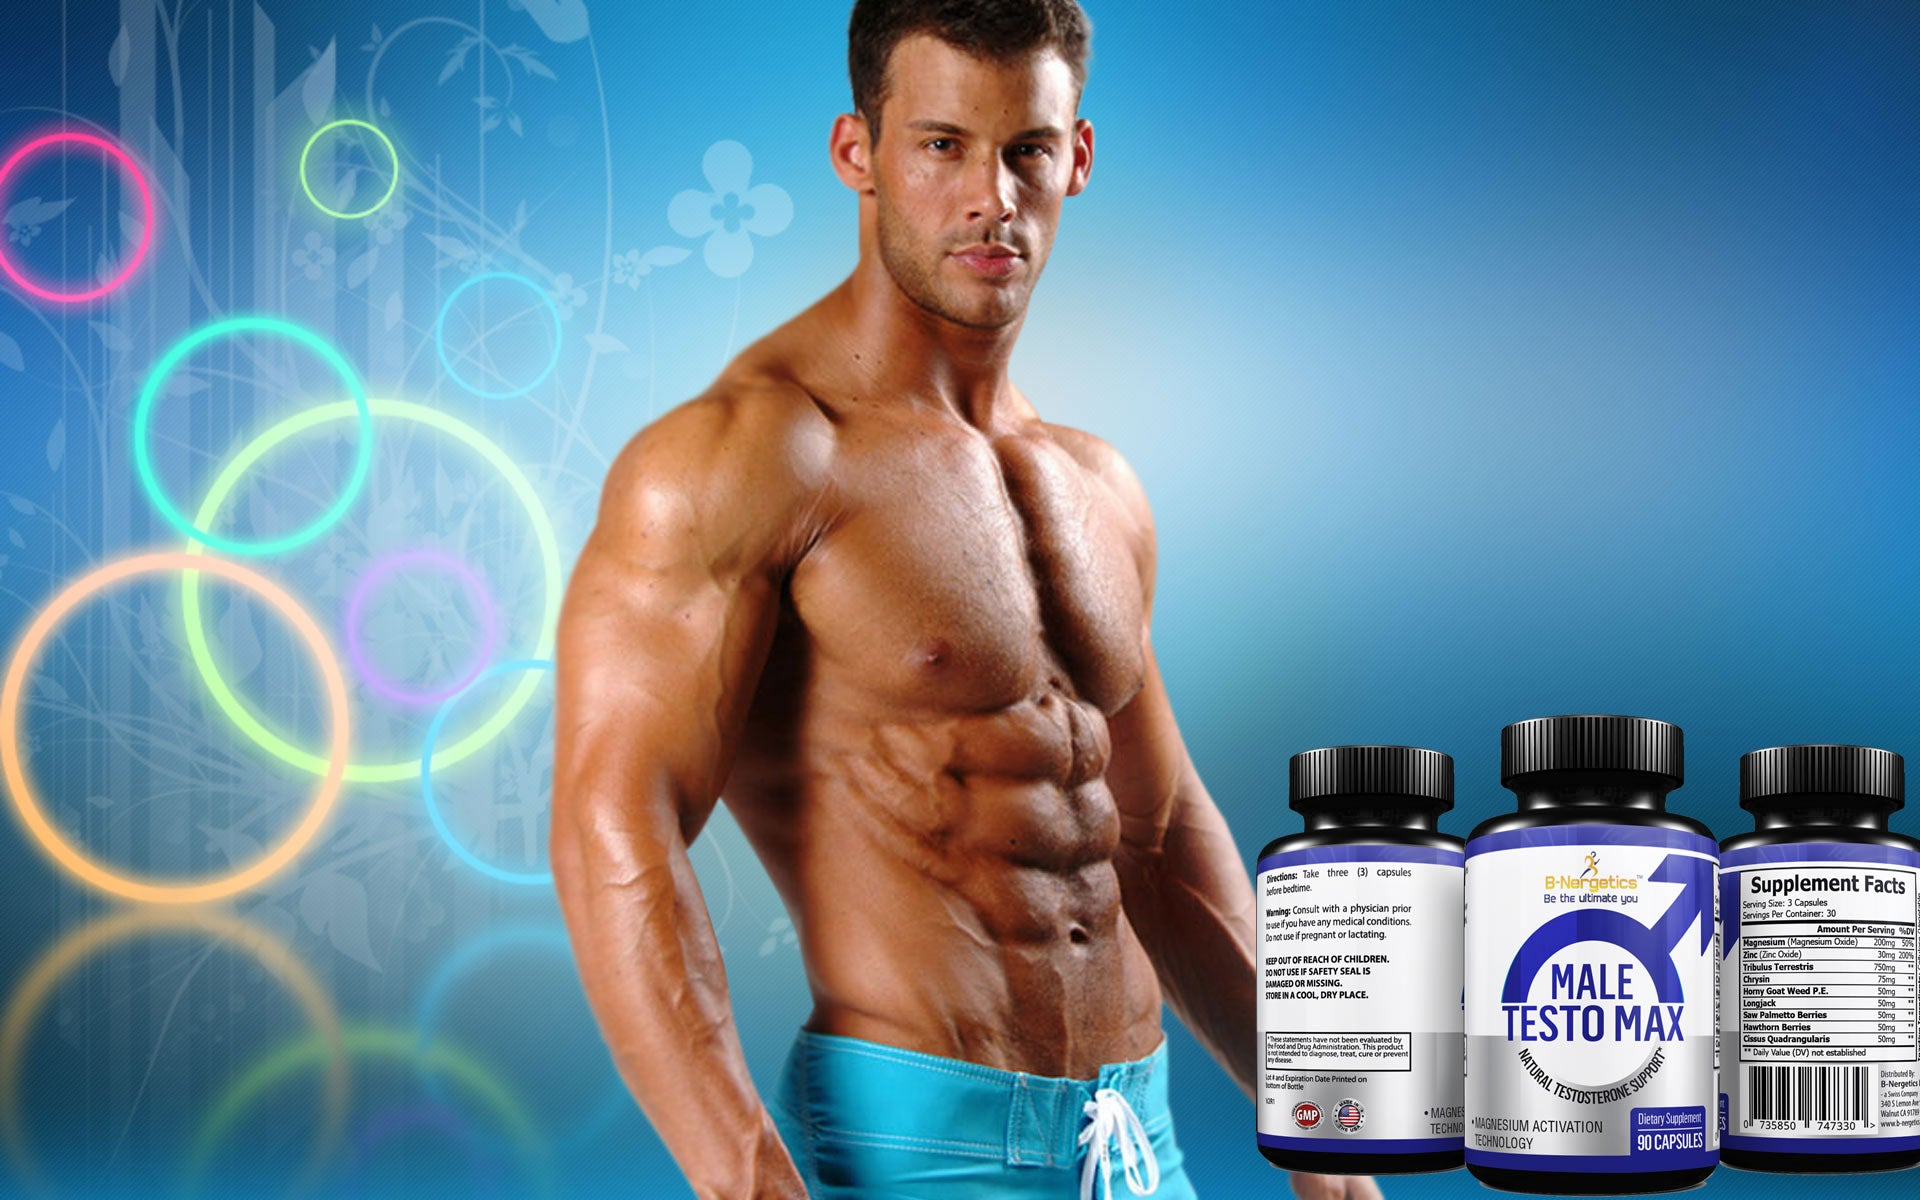 Male Testo Max - Testosterone Booster Supplement